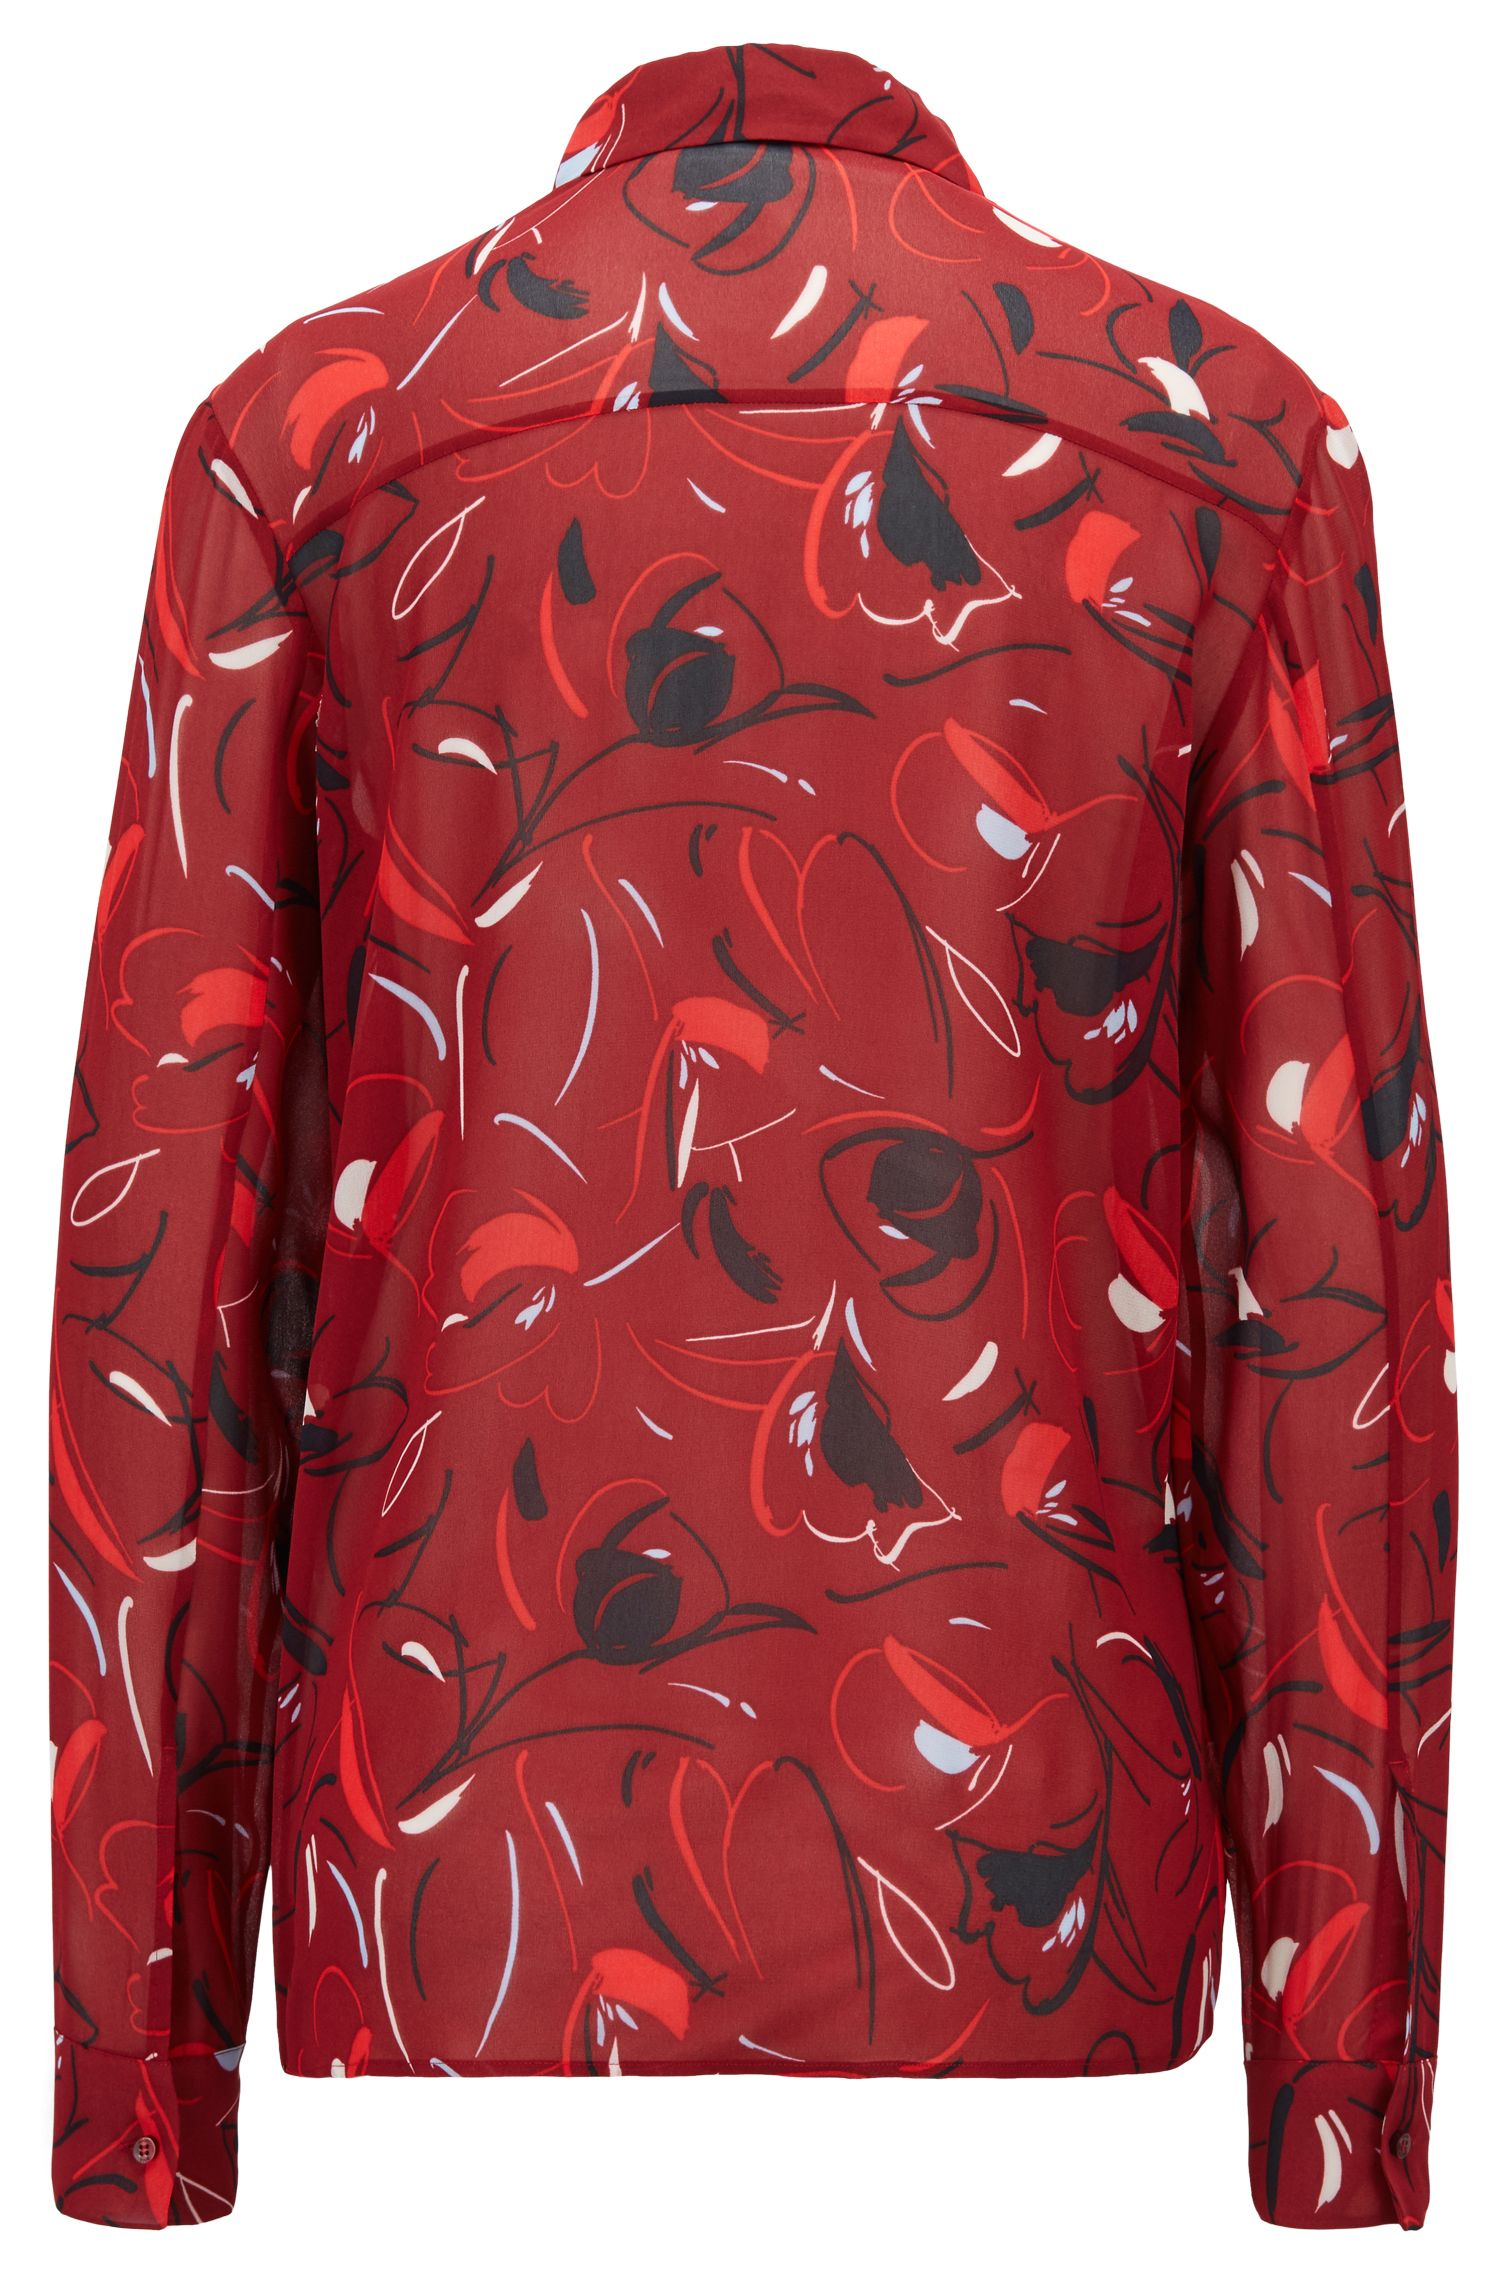 Relaxed-fit blouse in printed Italian fabric, Patterned